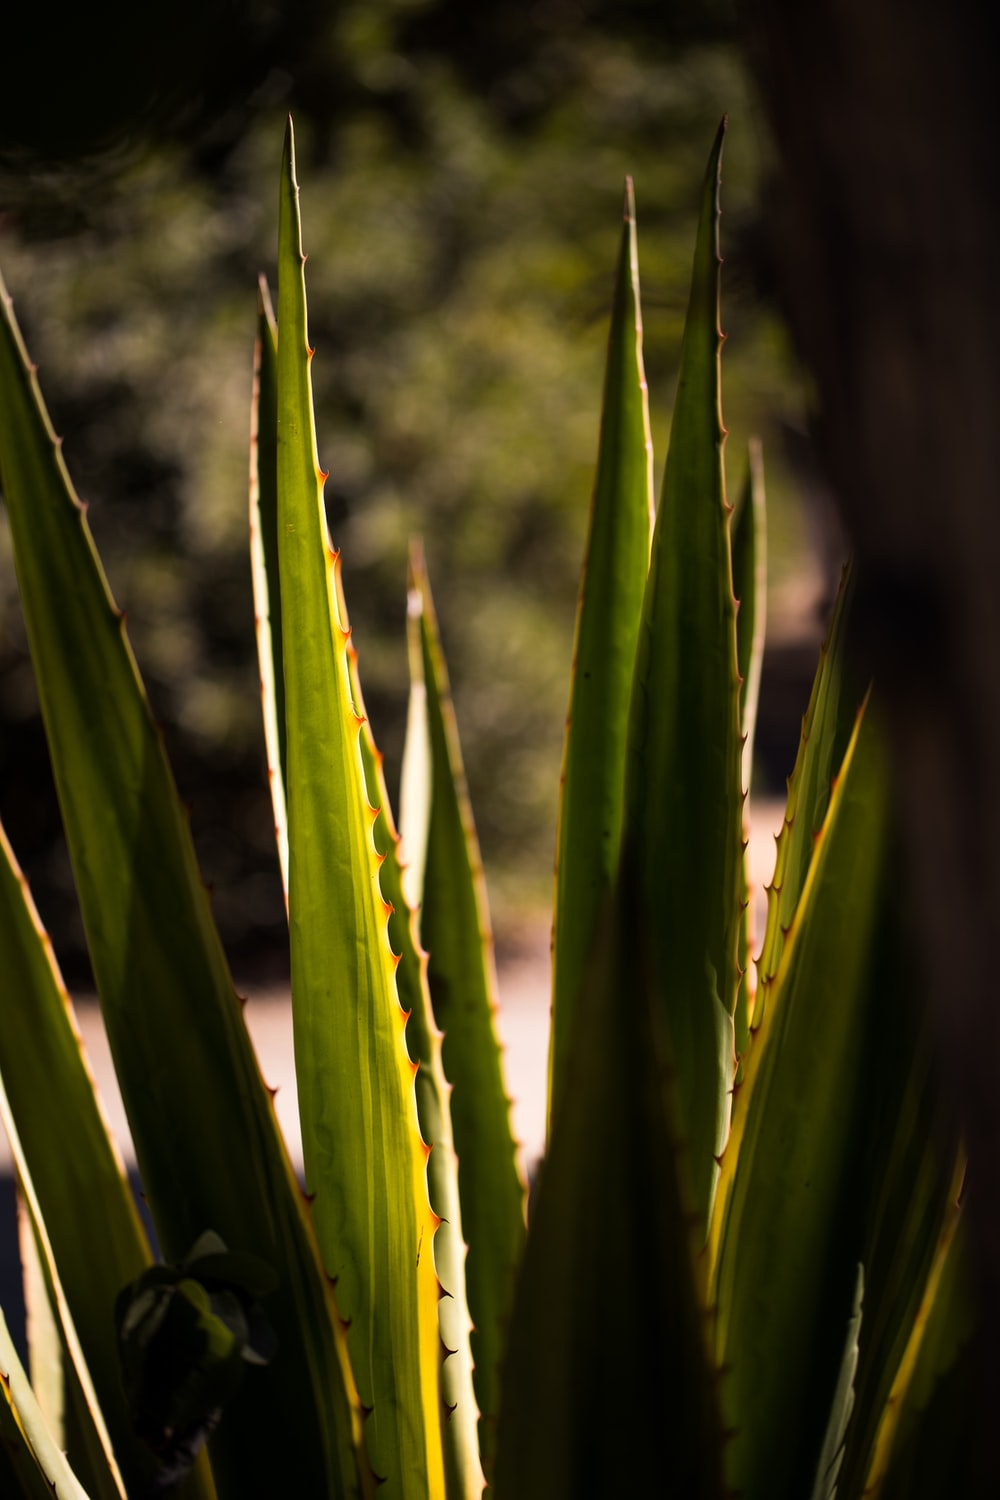 aloe vera plant pictures | download free images on unsplash